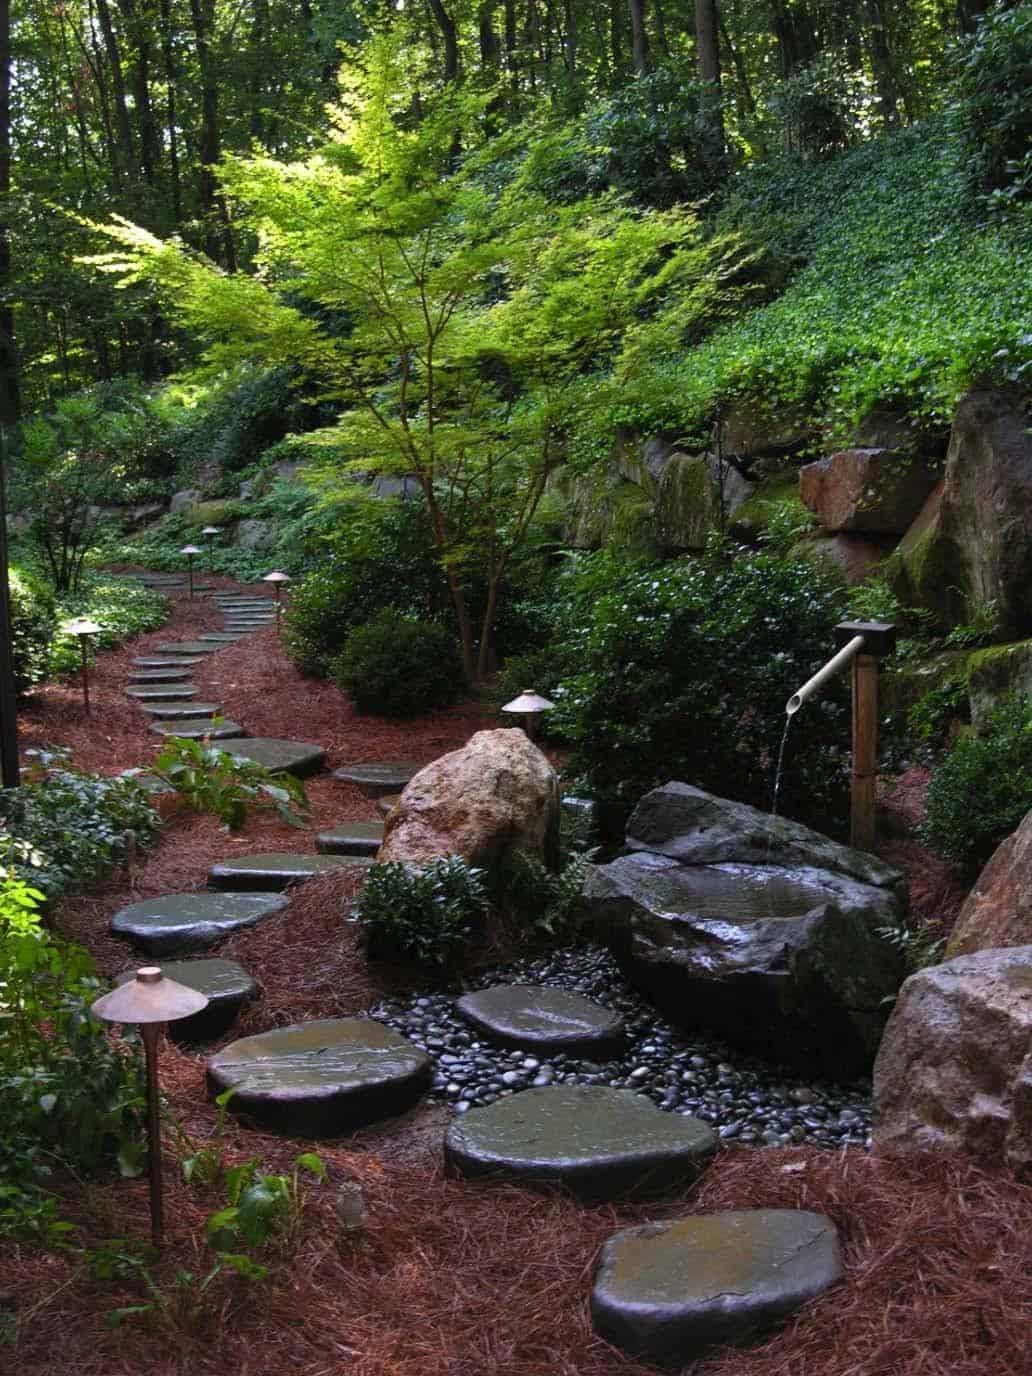 40 Brilliant Ideas For Stone Pathways In Your Garden - Stone-garden-ideas